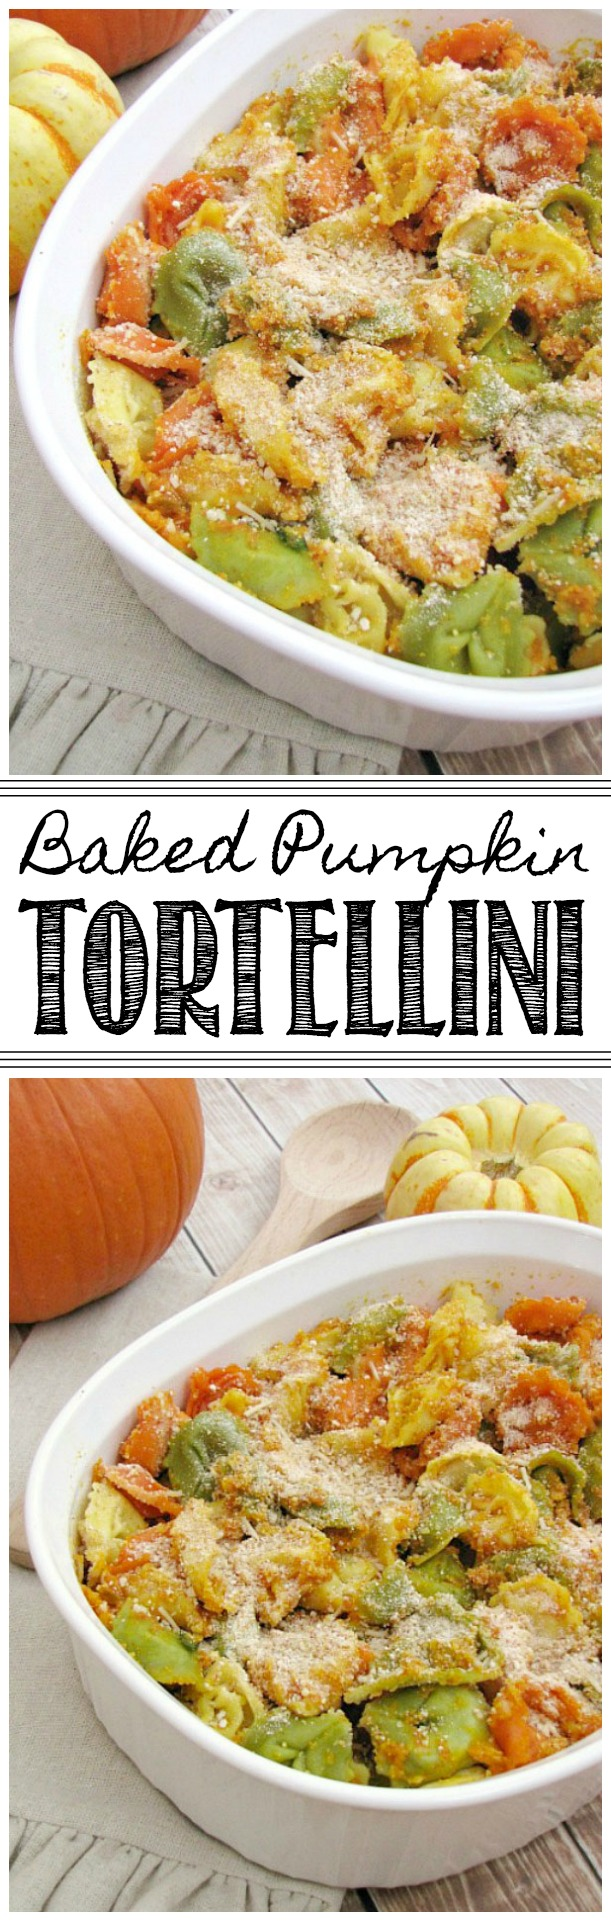 Delicious baked tortellini with a creamy pumpkin sauce.